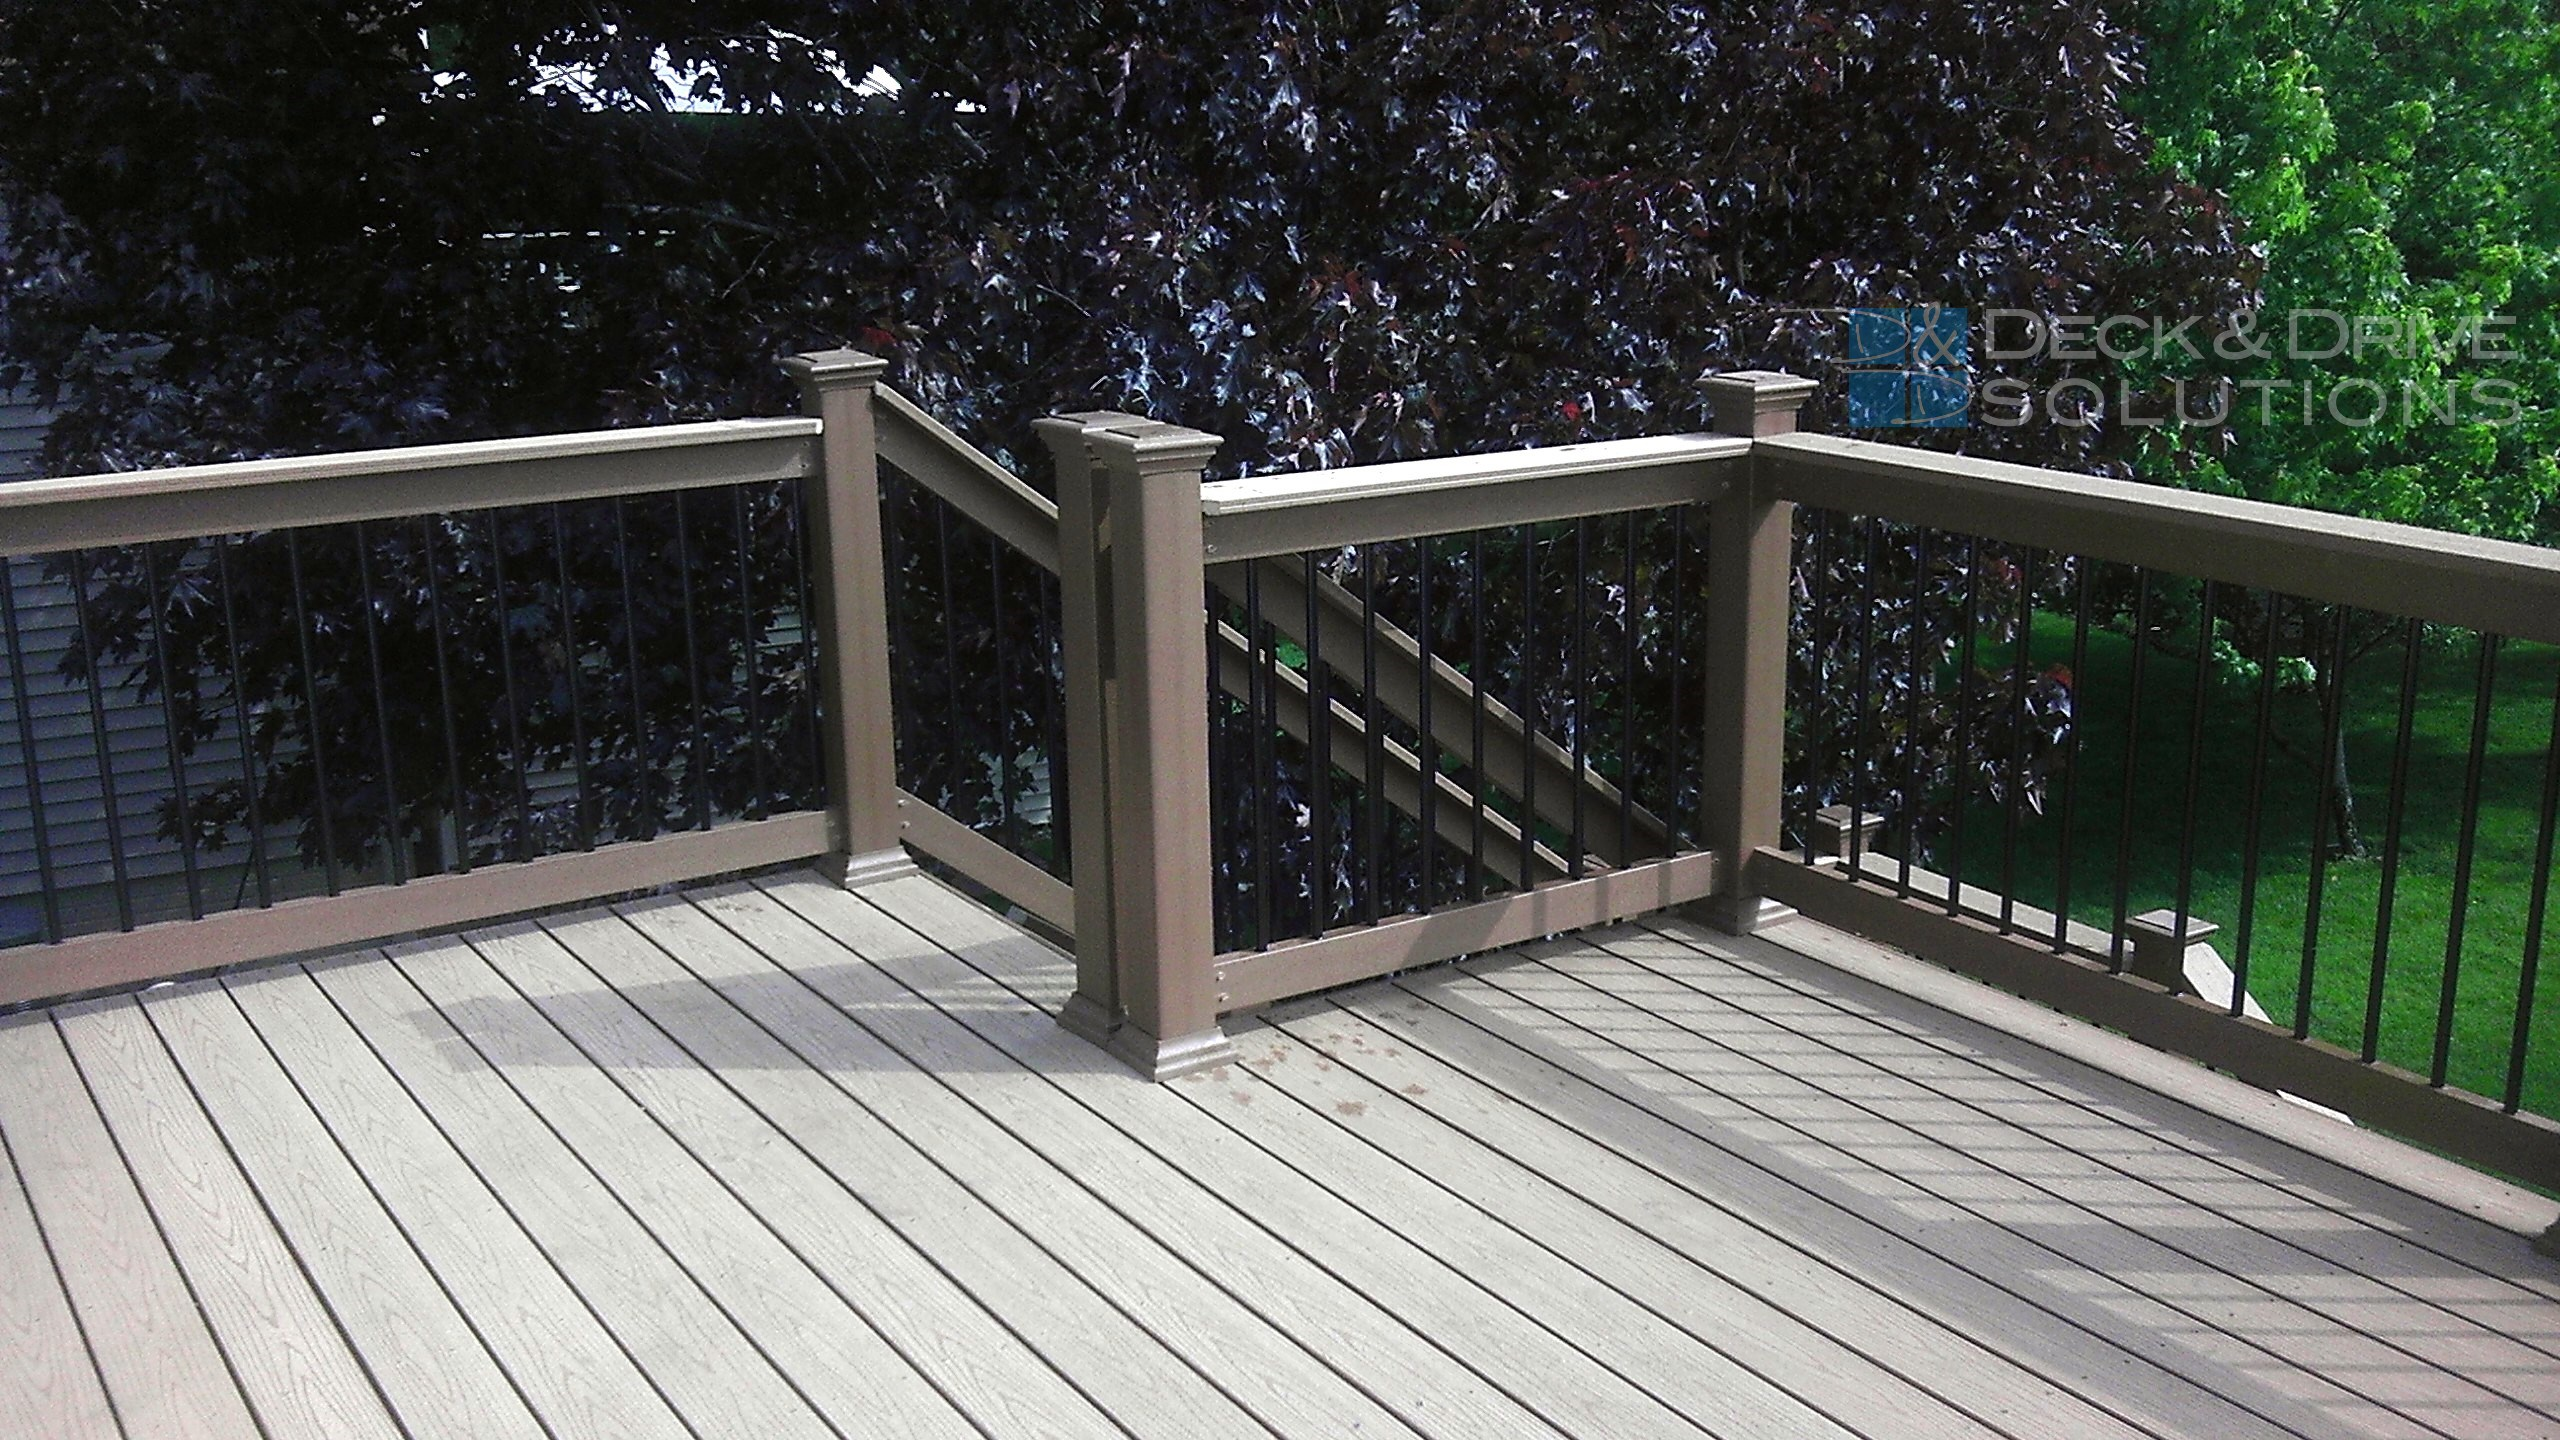 Deck resurface with timbertech composite decking and for Composite deck railing